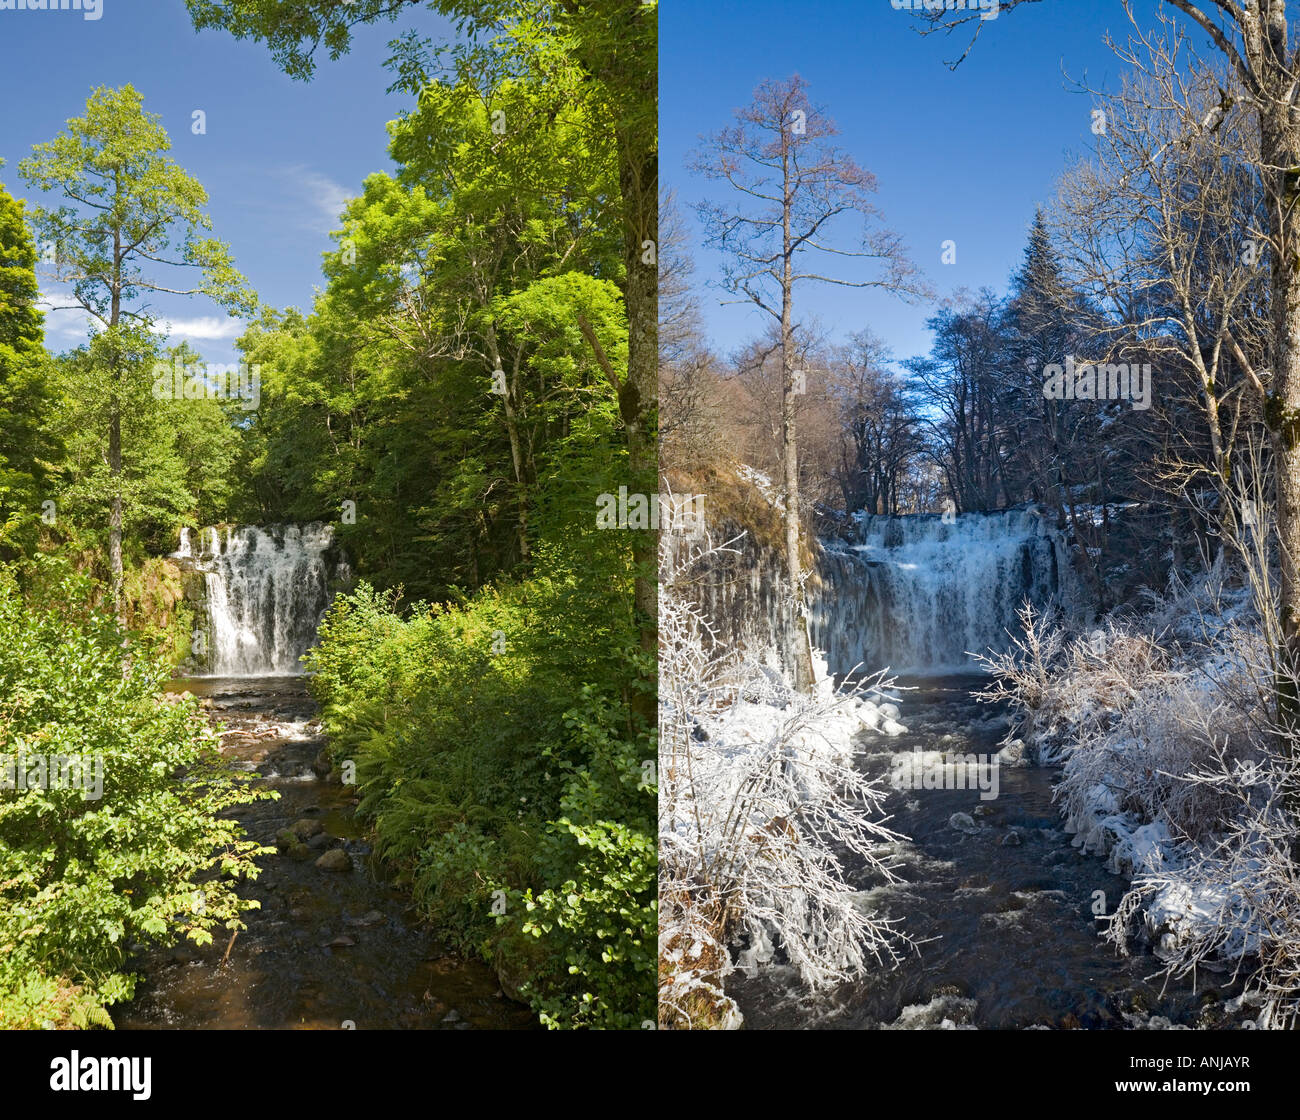 In Summer and Winter, the 'Bois de Chaux' cascade, at Entraigues, La cascade du Bois de Chaux à Entraigues, - Stock Image